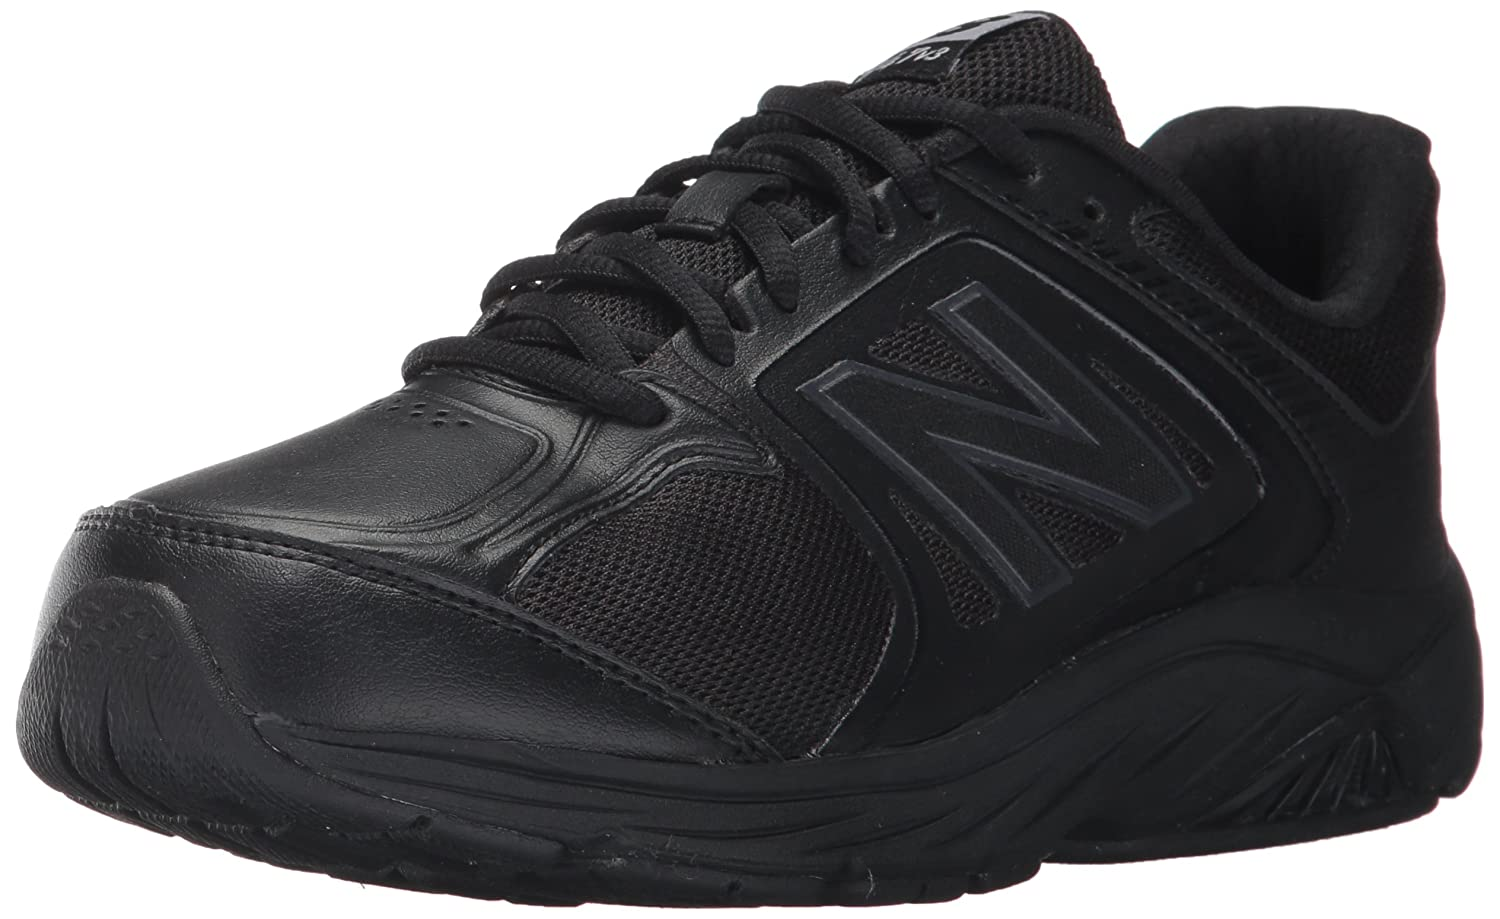 New Balance Women's 847v3 Walking Shoe B01MQLRYI3 5.5 D US|Black/Black